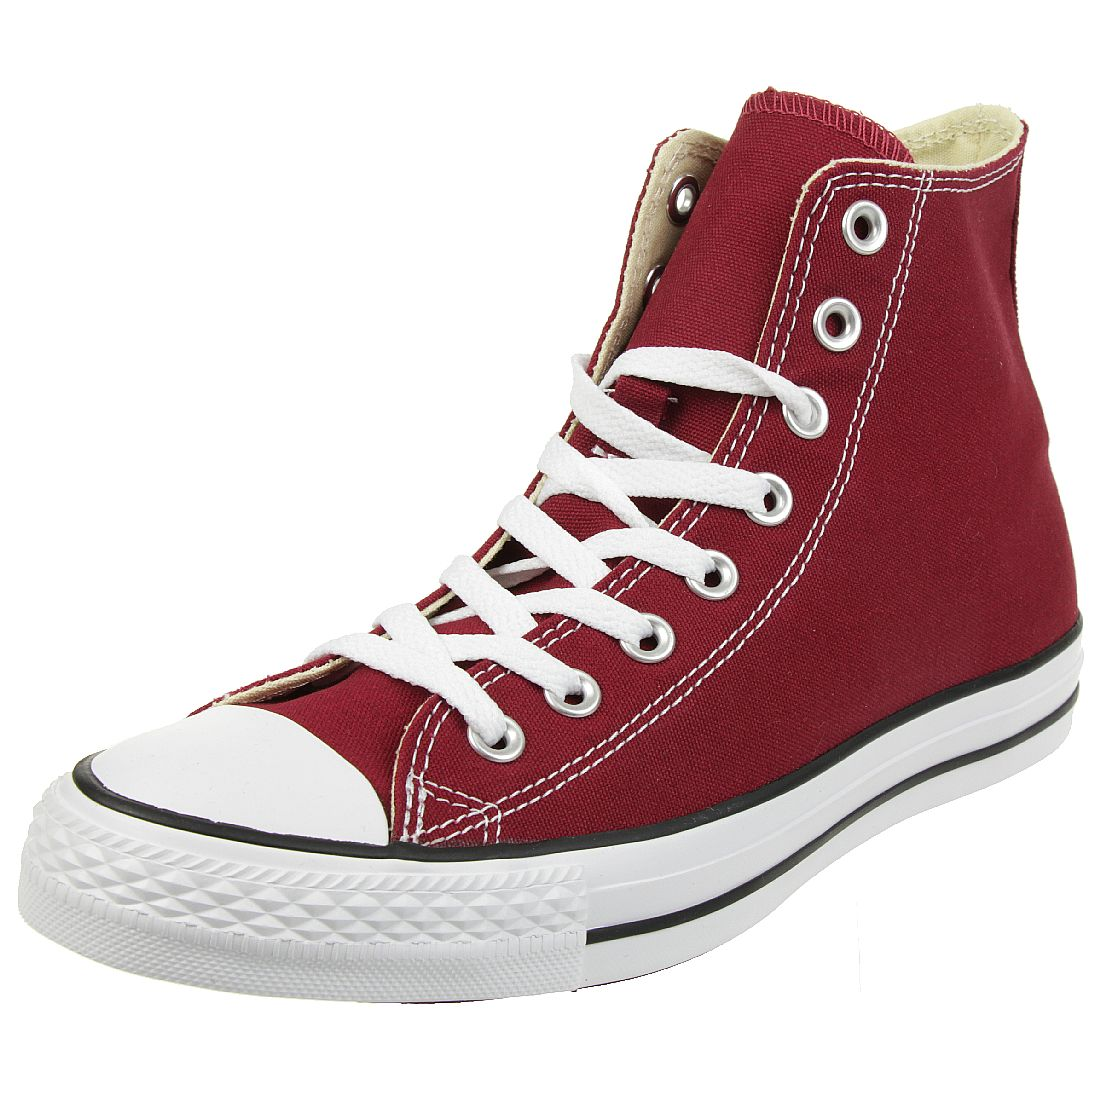 premium selection 4acbe b68f3 Converse C Taylor All Star HI Chuck Schuhe Sneaker canvas ...